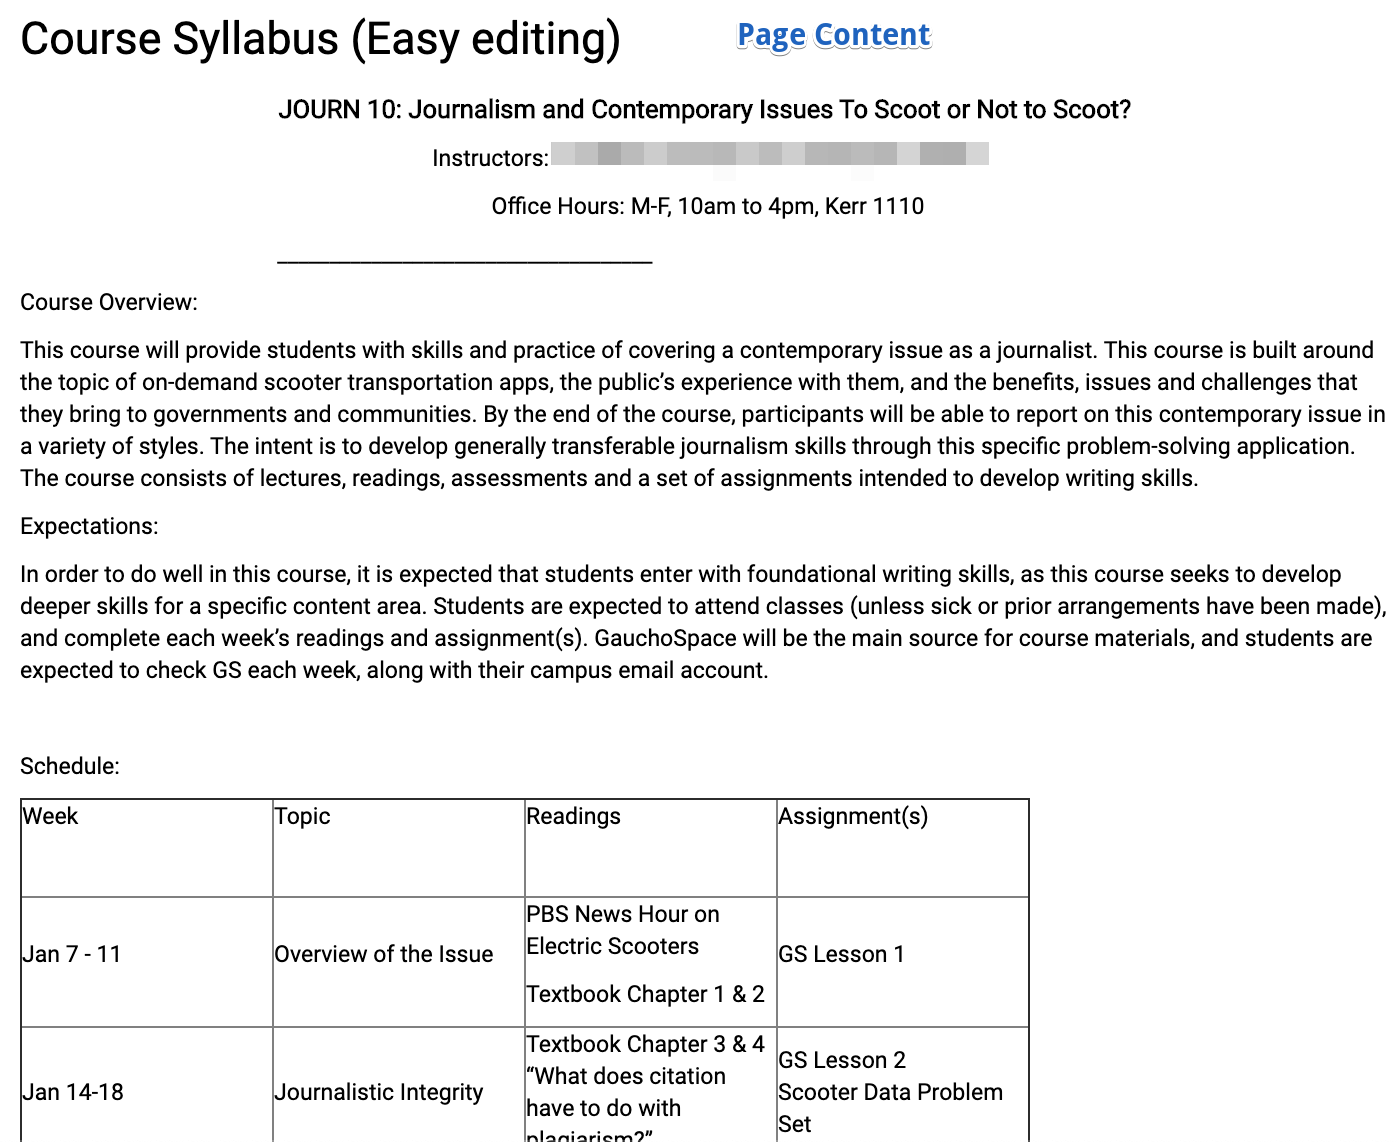 INTROEMPTY__Course_Syllabus__Easy_editing__2019-09-17_11-22-05.png